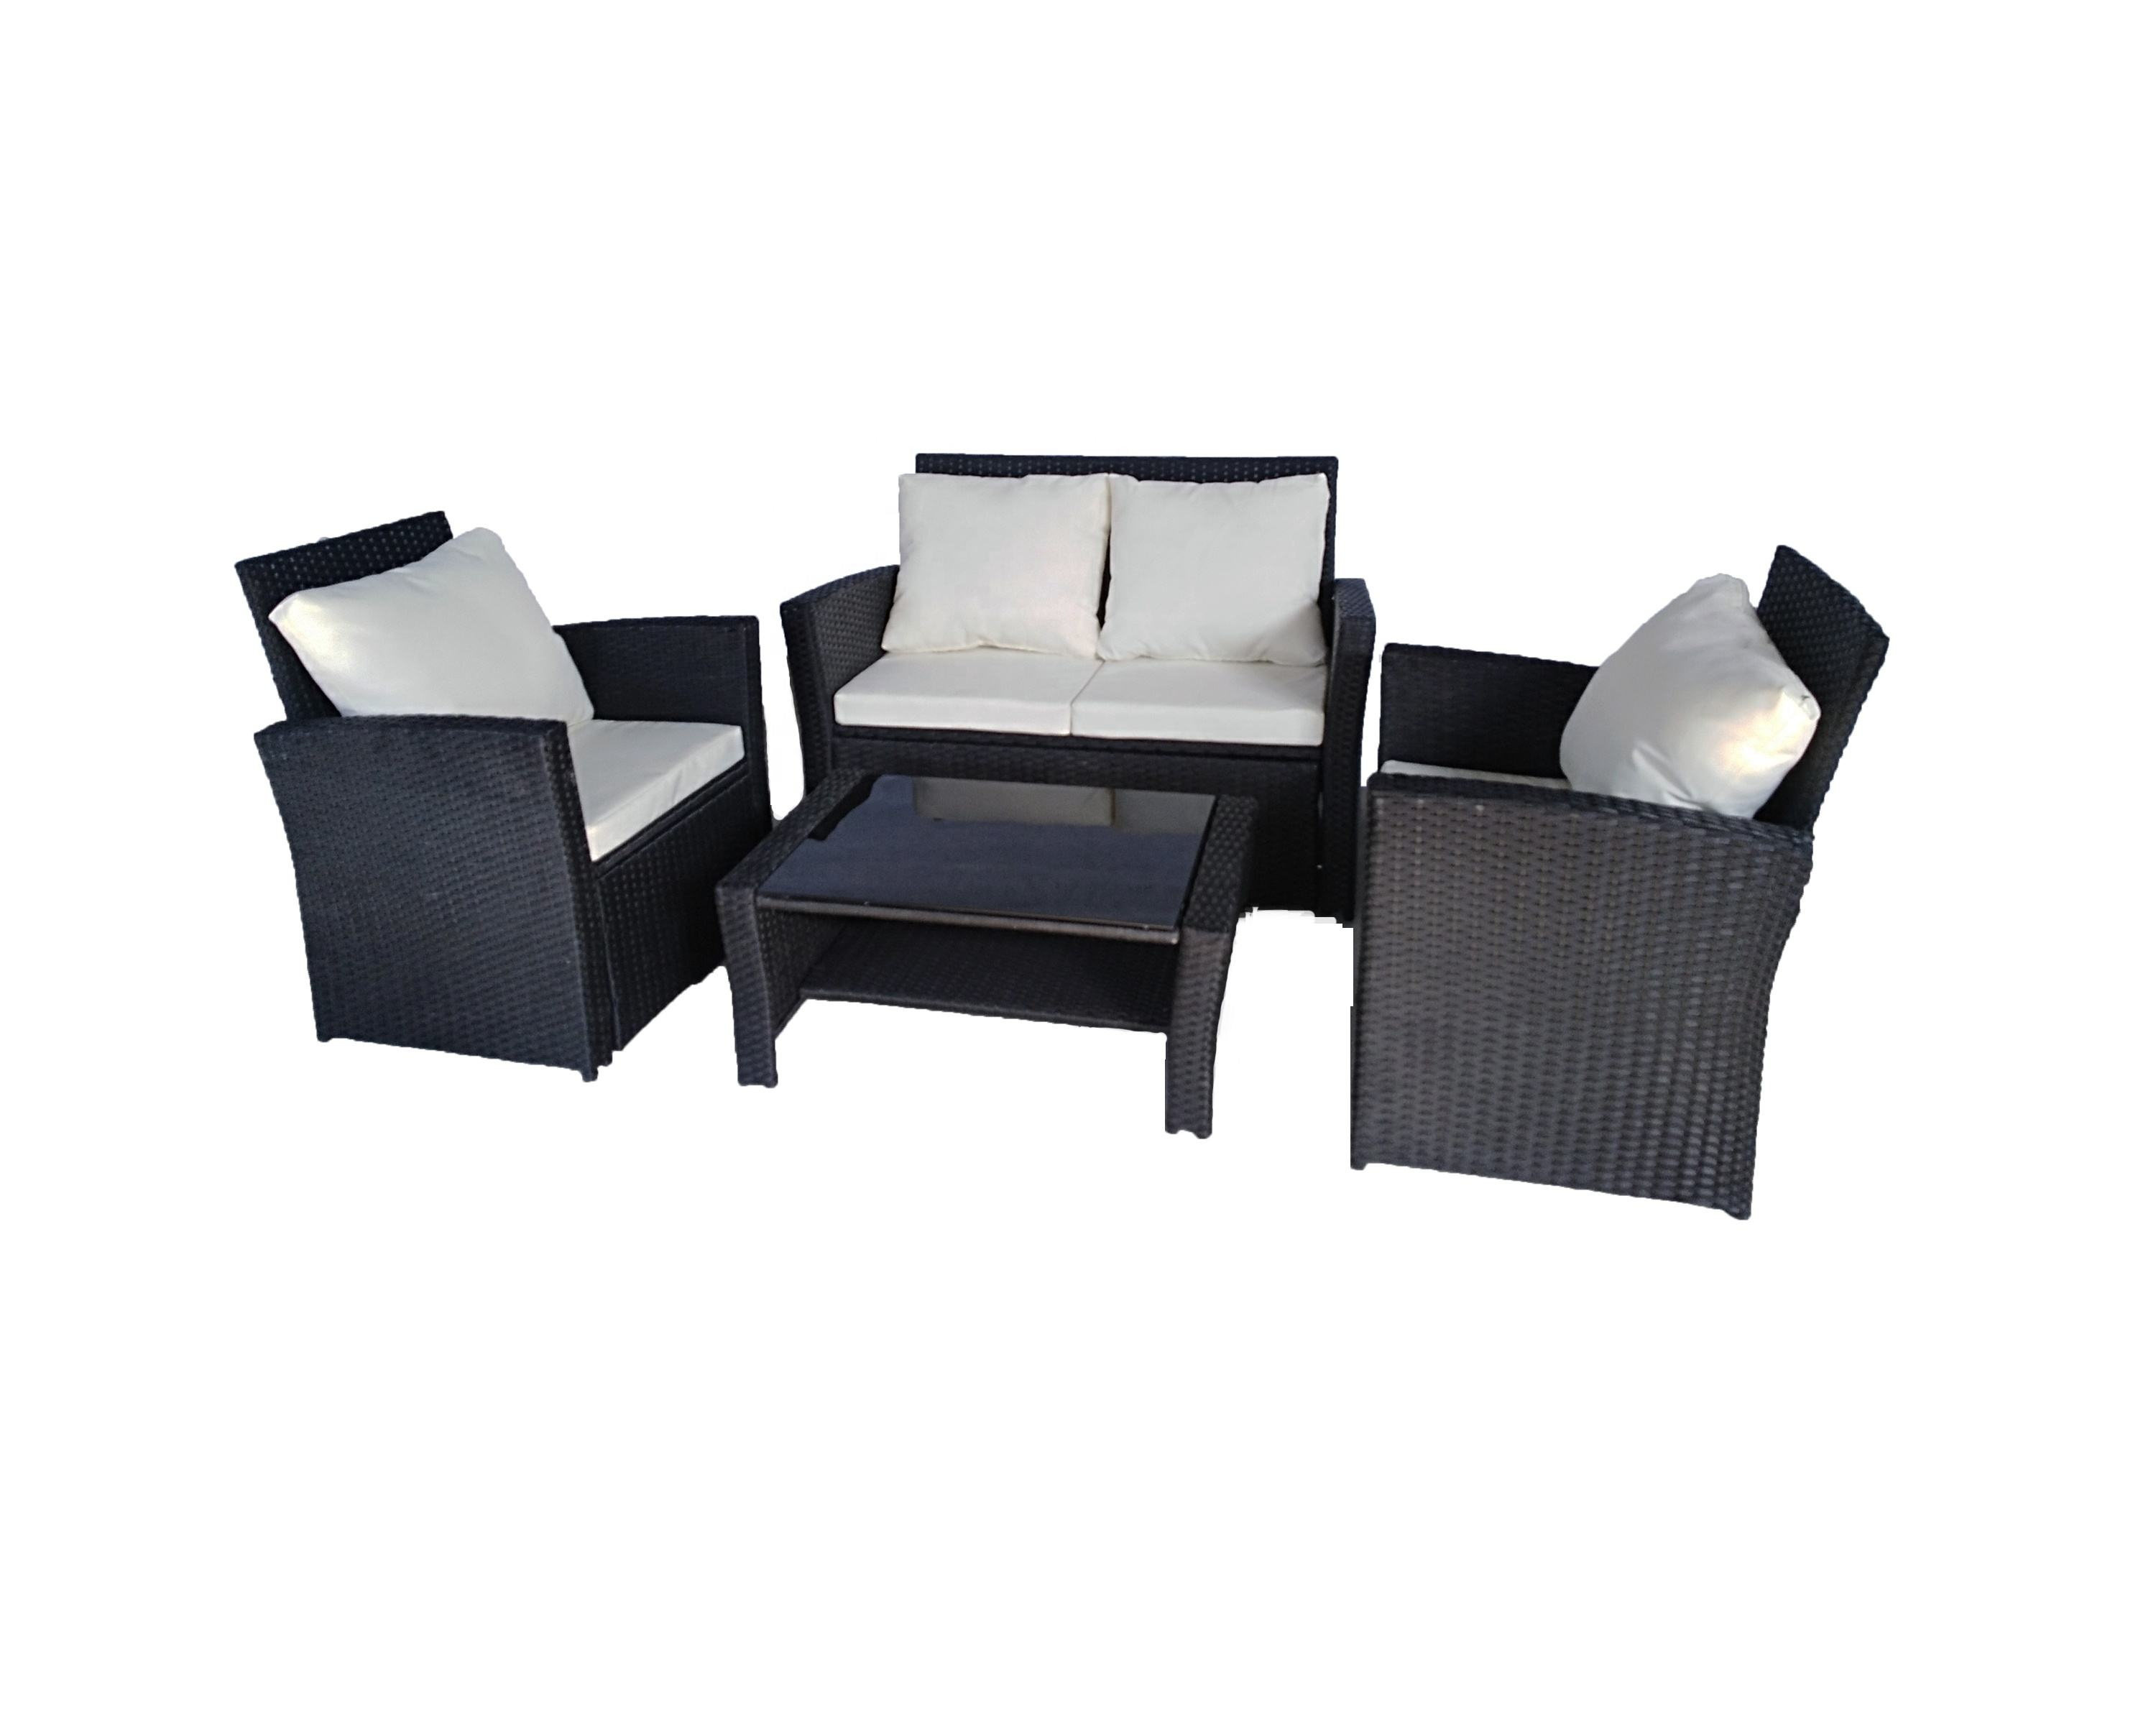 2020 Top sales Rattan Garden Furniture Sofa Wicker Weave 4 Seater Patio Conservatory set